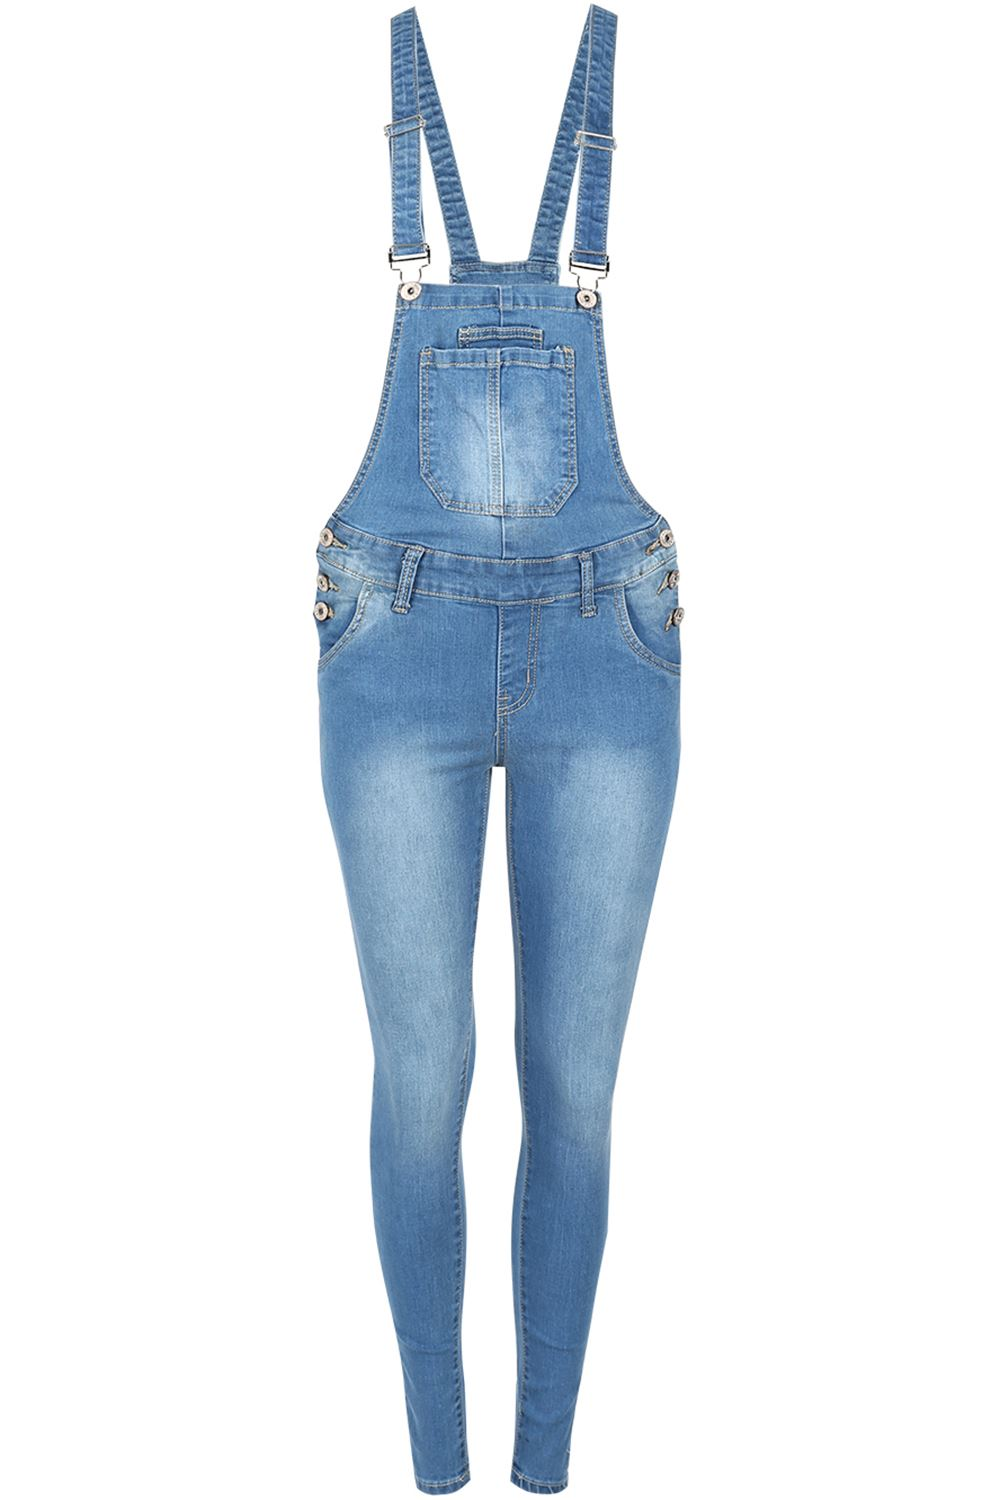 denim jeans Shop plus size jeans in modern and classic styles at roamanscom get the  perfect fit at the best price in on-trend plus size fashions today.